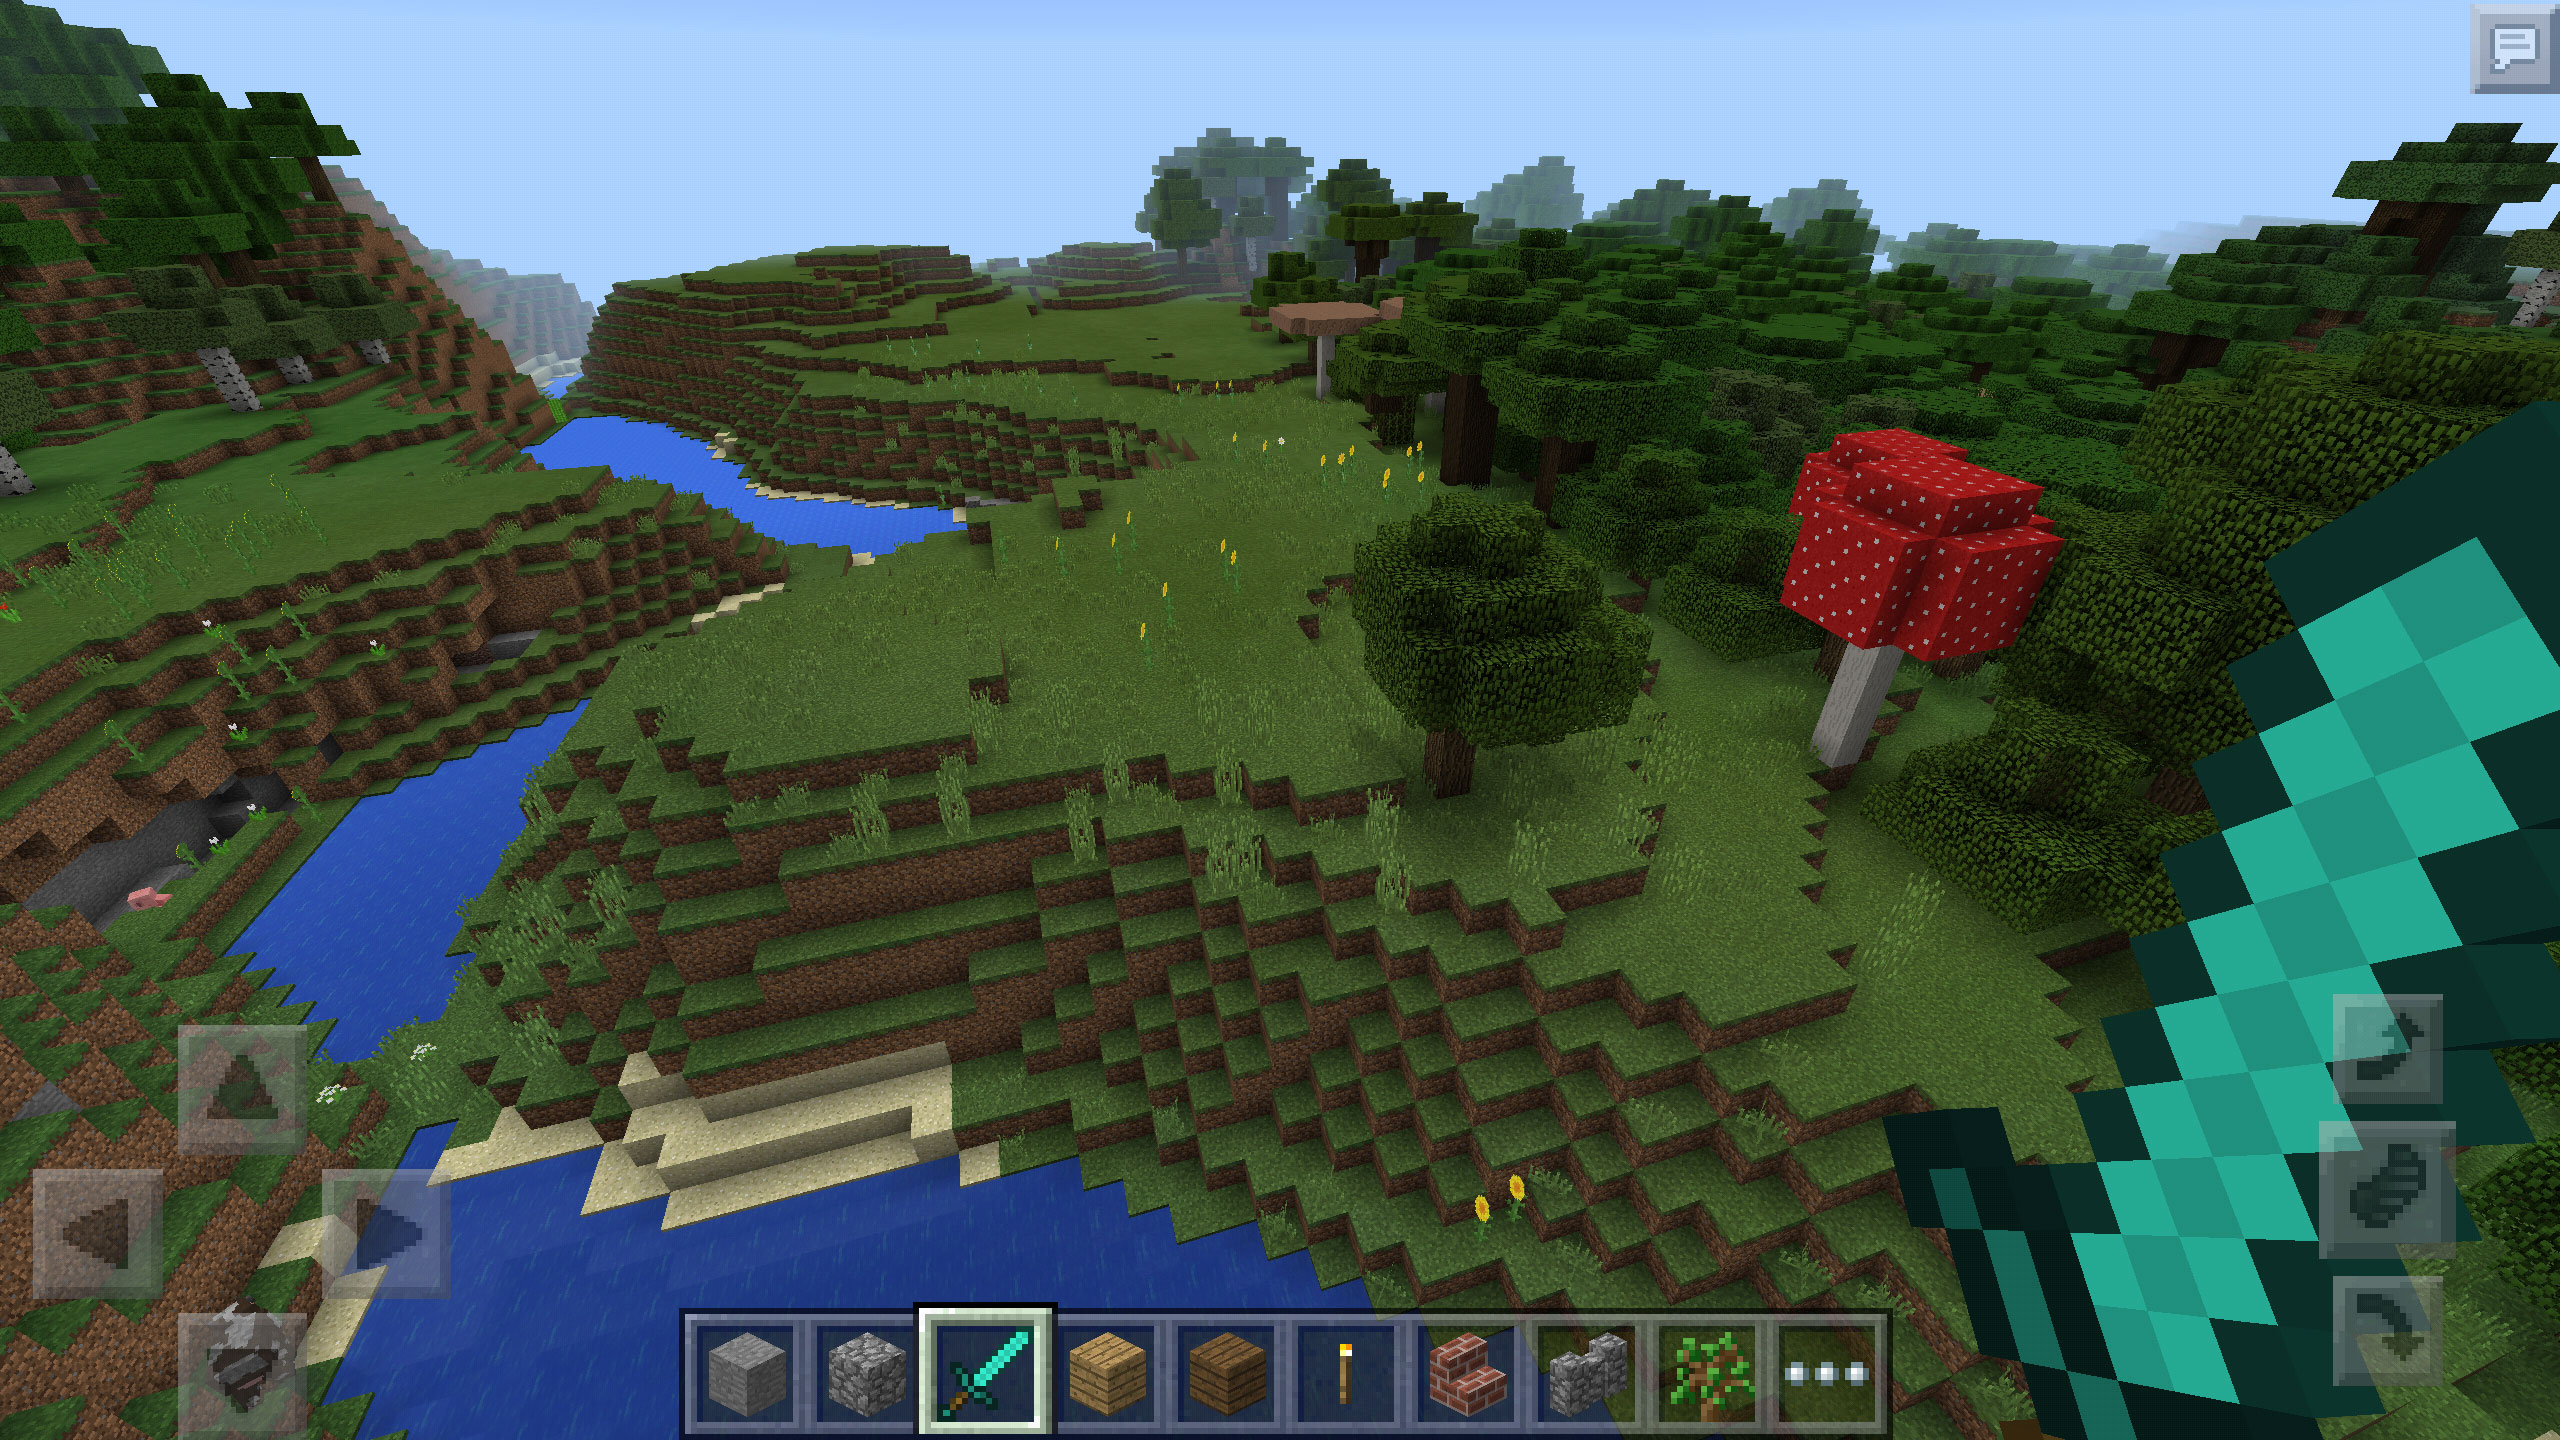 """Minecraft on phones will become more adaptable with the addition of command blocks and something comparable to the """"mods"""" available on PC versions of the game."""